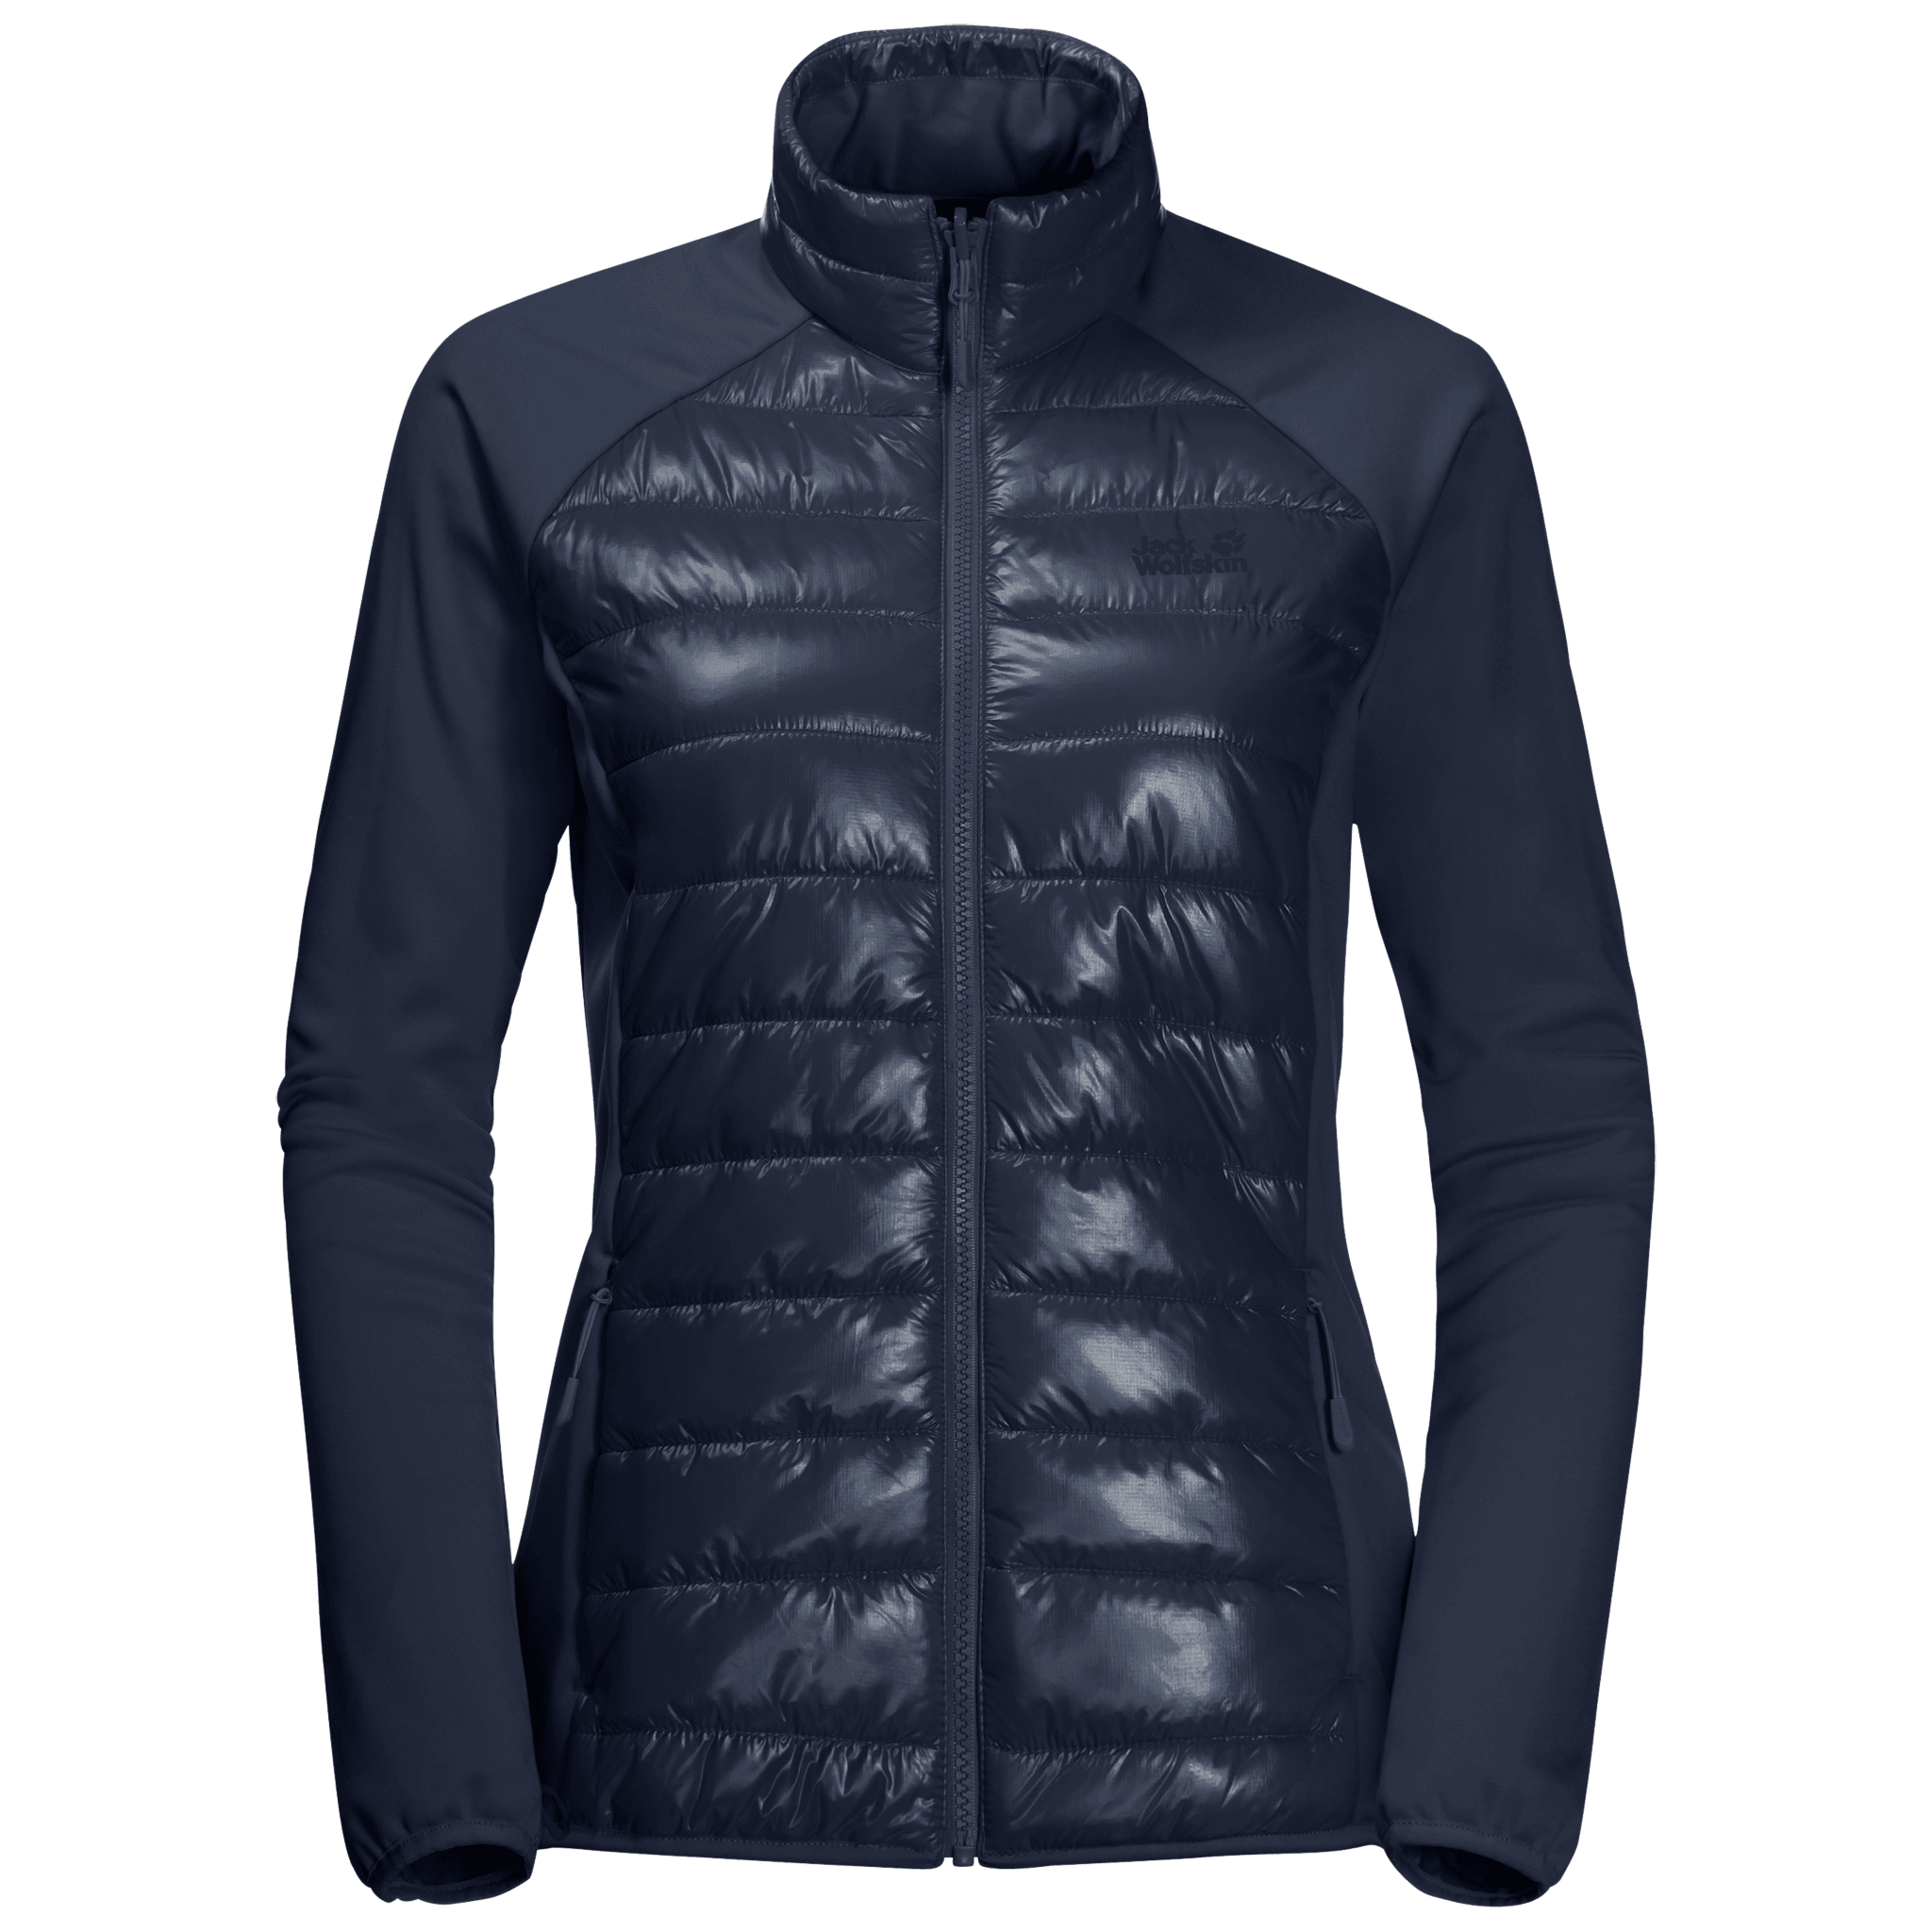 Midnight Blue 3-In-1 Waterproof Hardshell